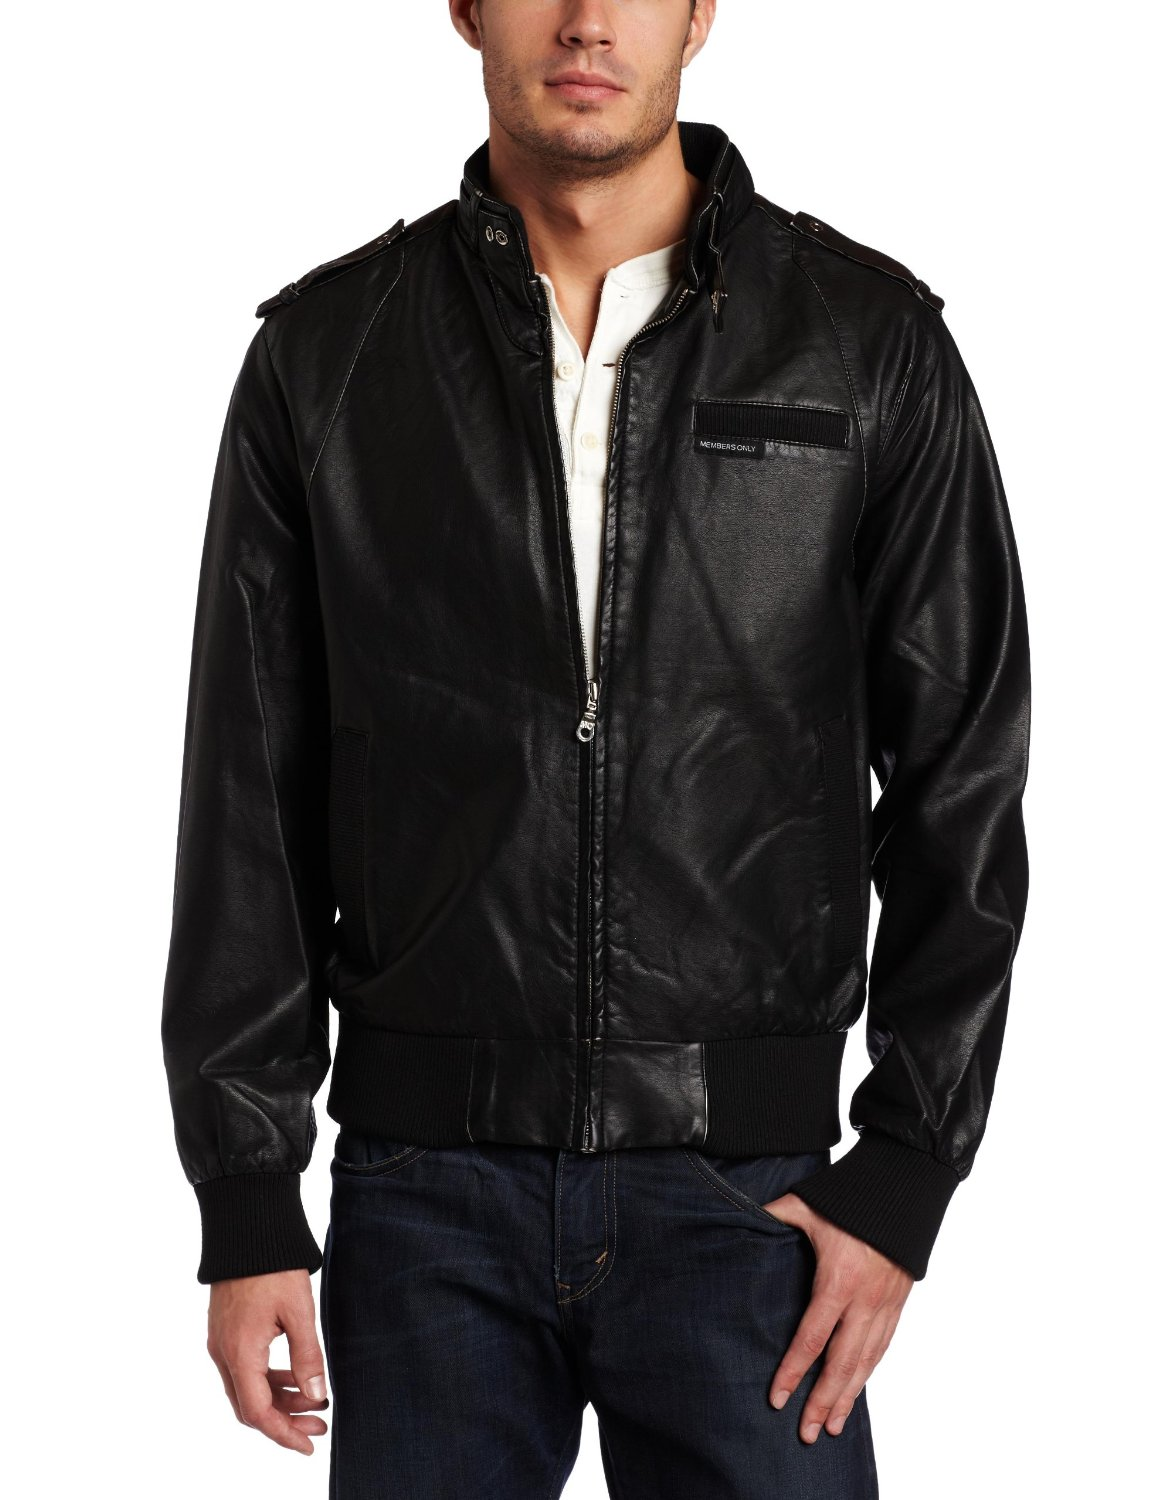 Members Only Jacket Designs 2014 For Men Fashion Fist 25